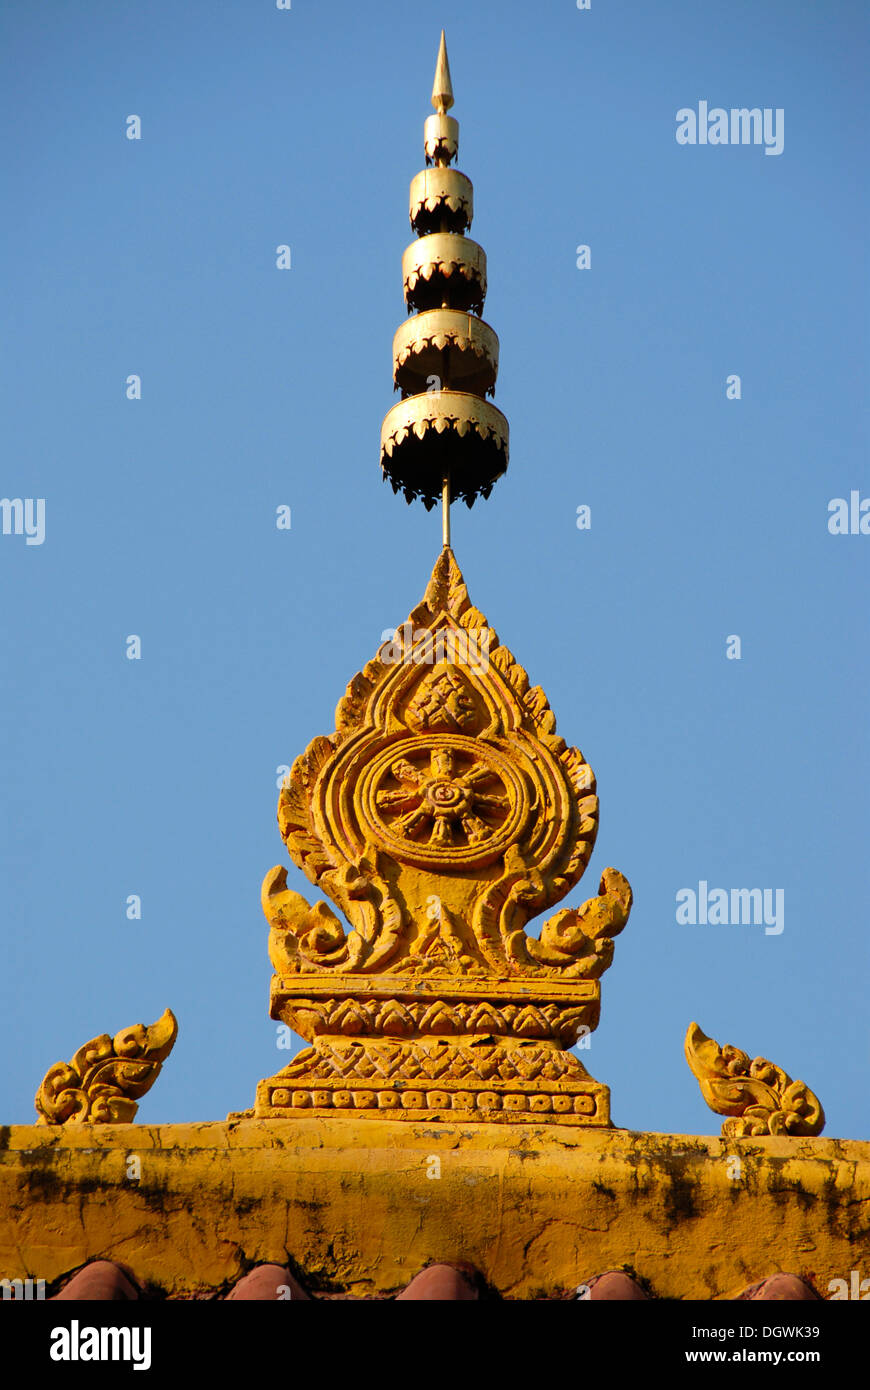 Theravada Buddhism, ornate decorations on the roof, Vat Nongbone monastery, Vientiane, Laos, Southeast Asia, Asia - Stock Image